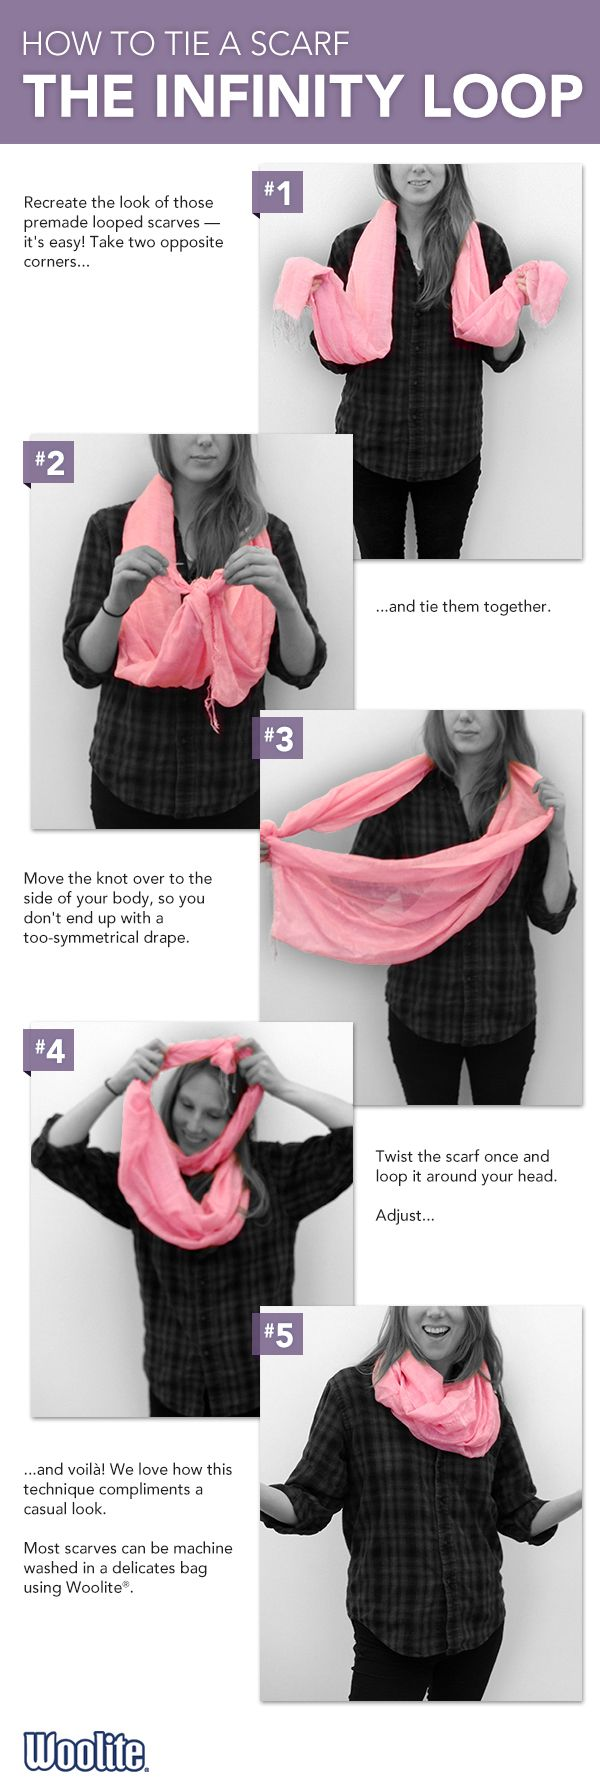 19 Best How To Tie A Scarf Images On Pinterest Head Scarfs The Doublewrap Double Windsor Knot Learn Fashionable Long Infinity Loop With This Tip From